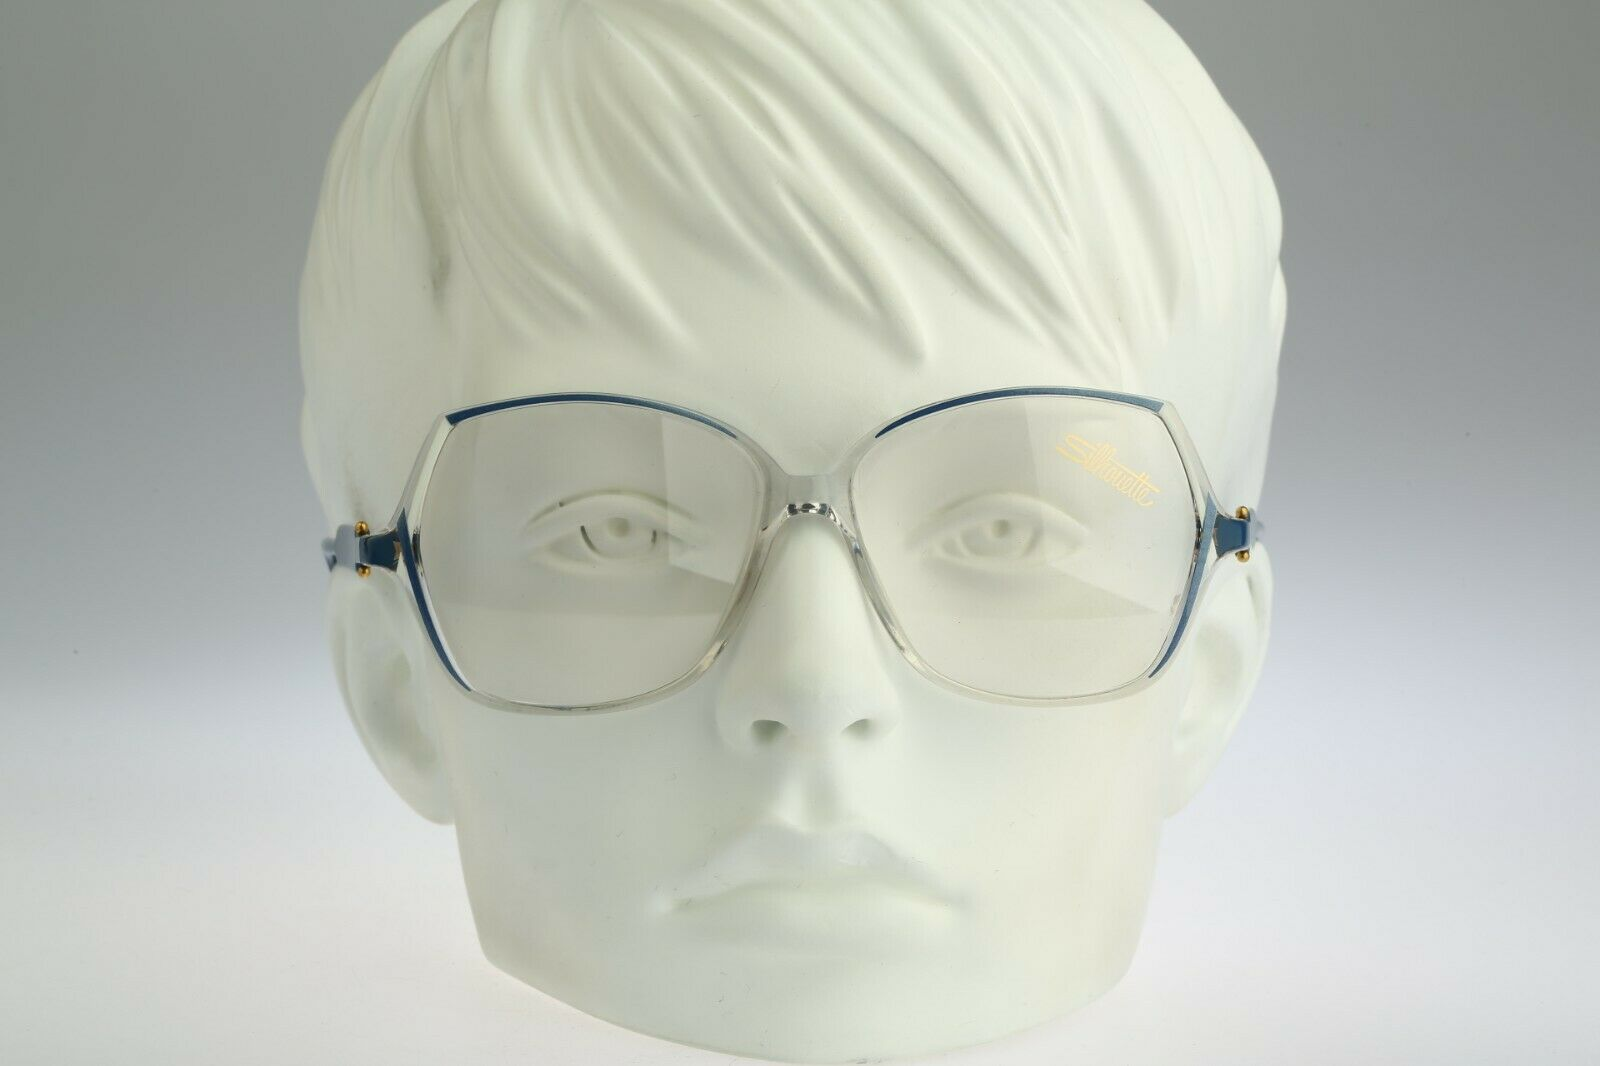 Silhouette M 1757 C 1866 Vintage 80s oversized blue & clear butterfly eyeglasses